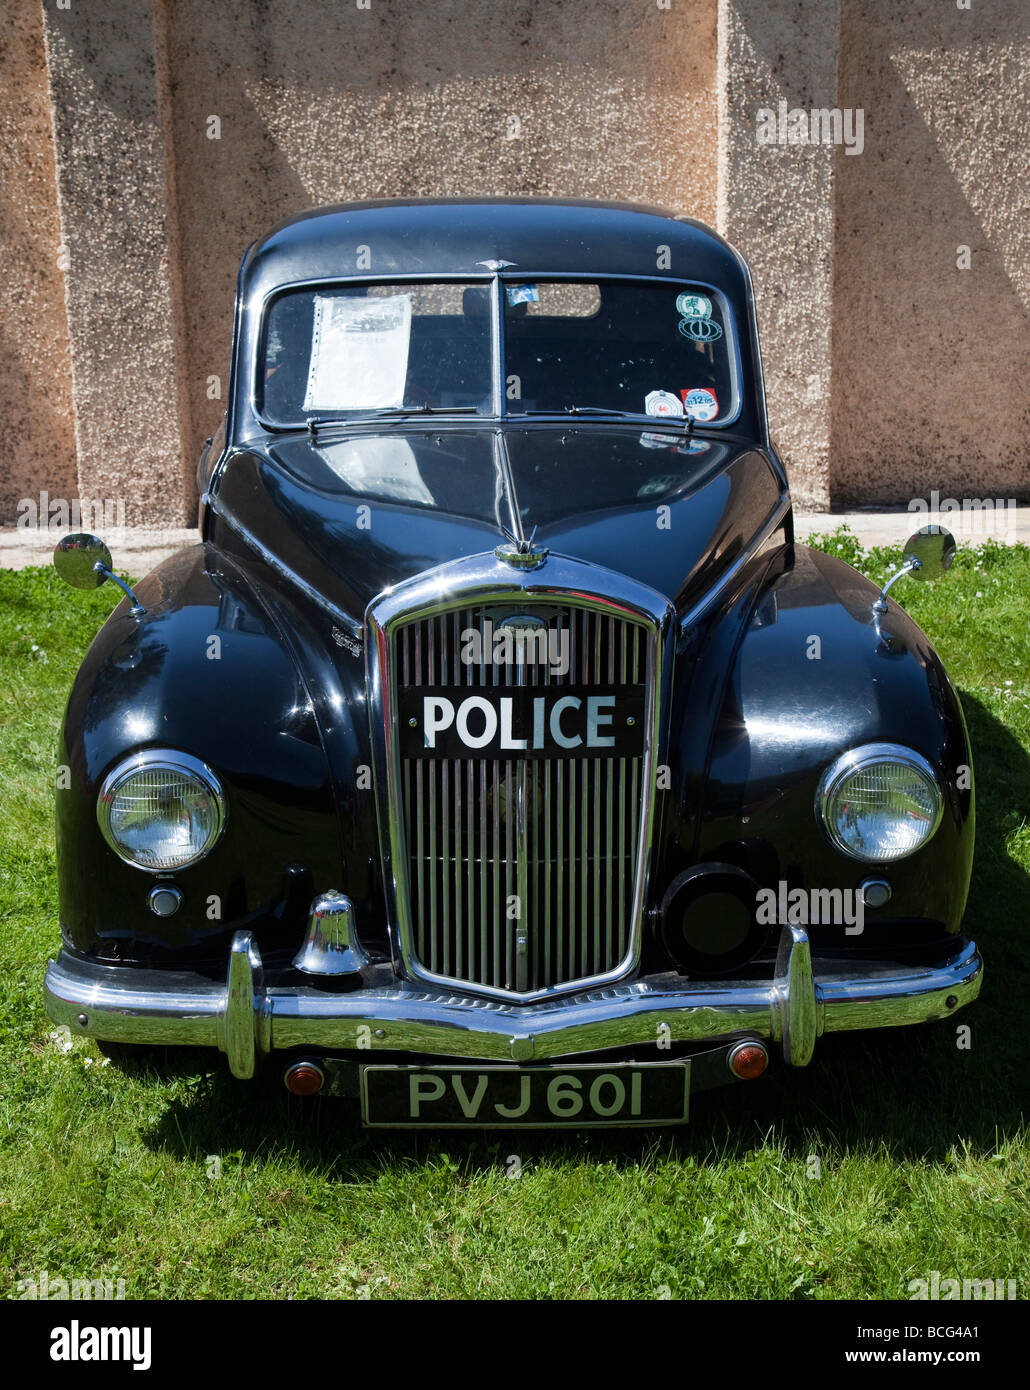 Old Wolseley black police car at rally Wales UK Stock Photo ...